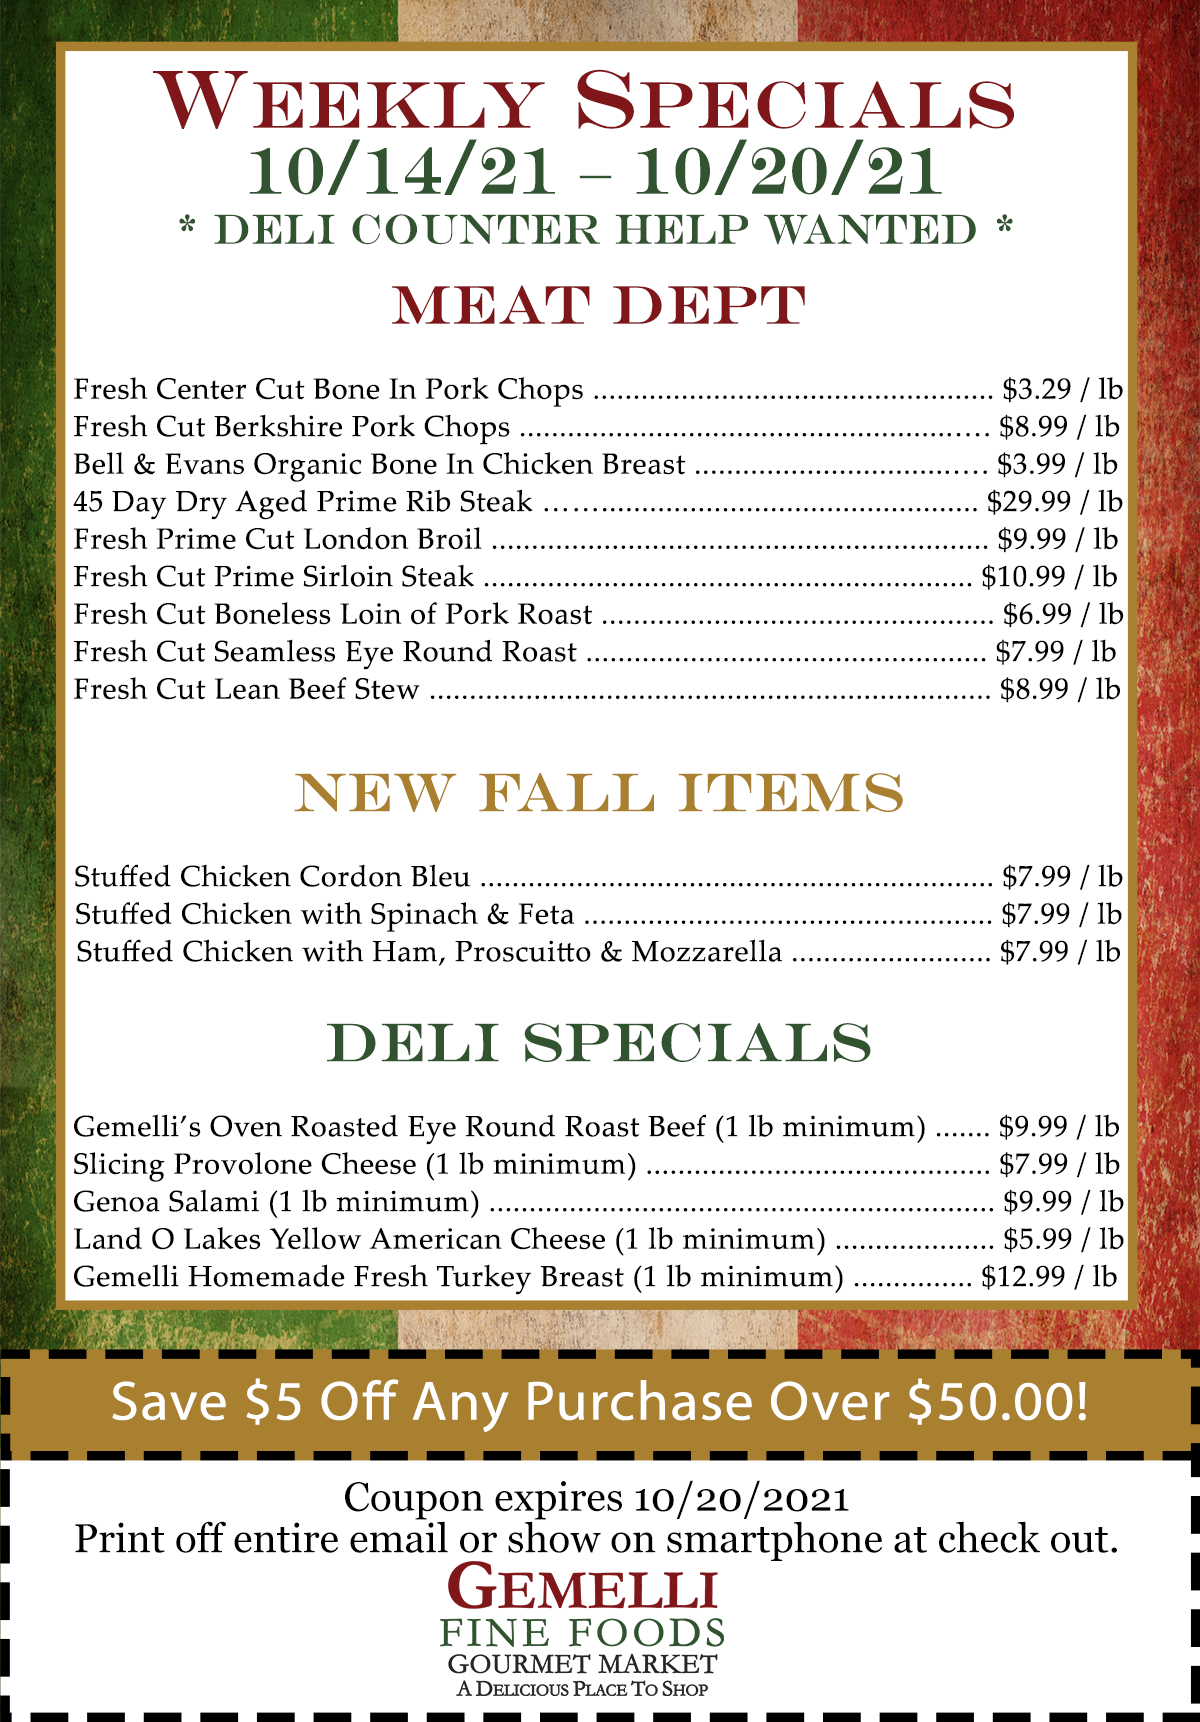 Weekly specials for 10/14 - 10/20. Click image or button above image for pdf.